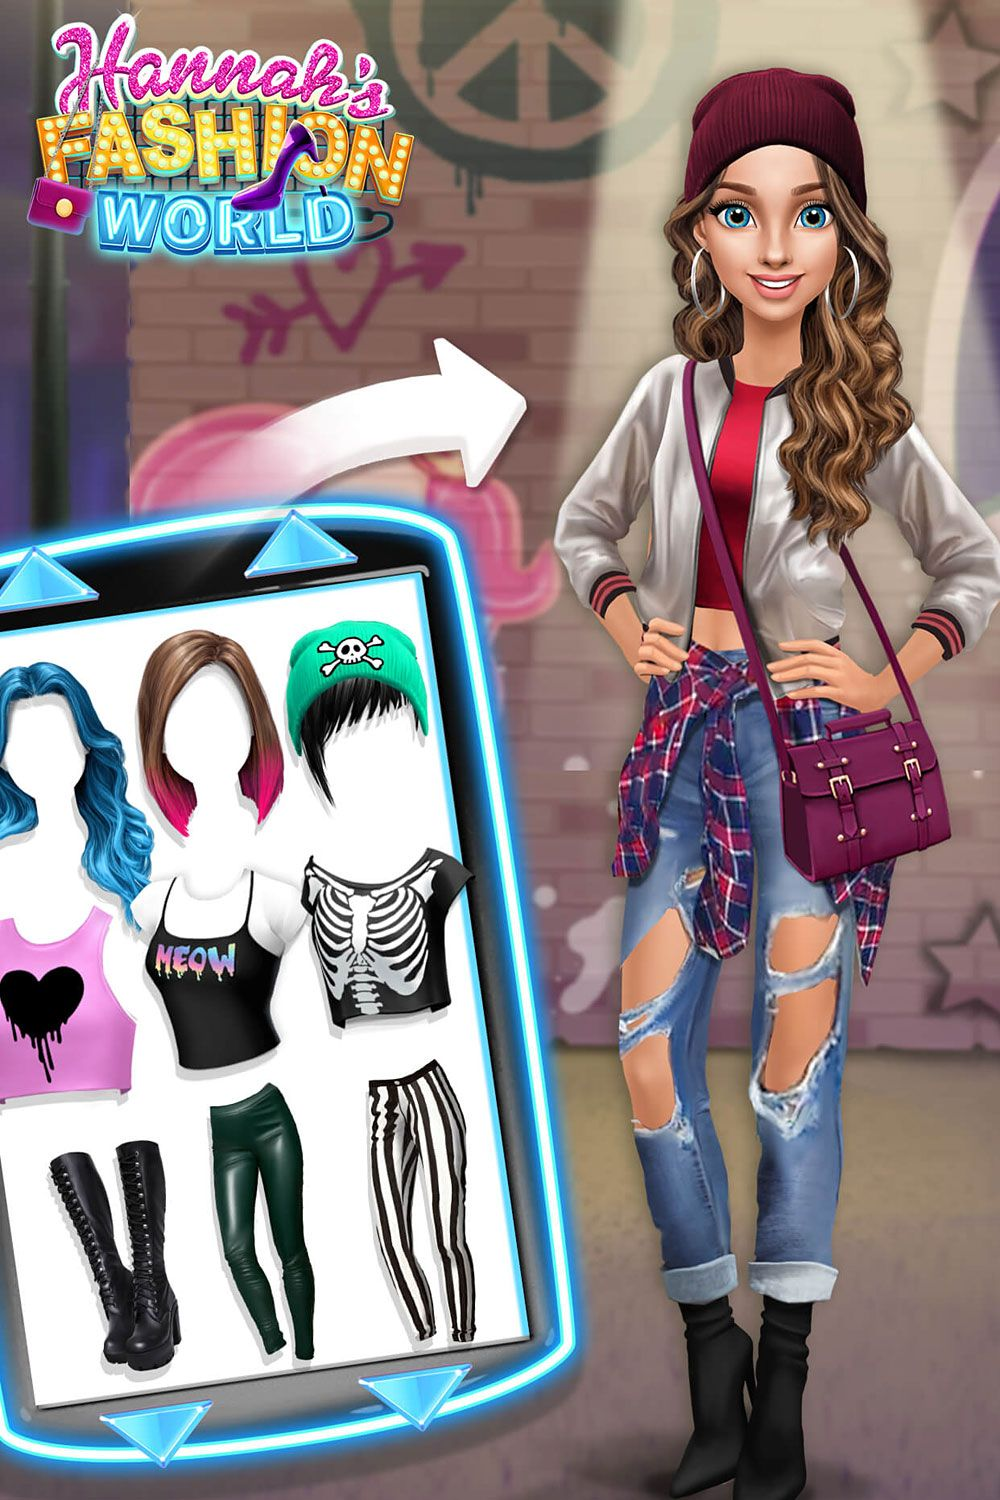 Ripped Jeans Silver Bomber Jacket Fun Games For Girls Silver Bomber Jacket Makeup And Hair Salon